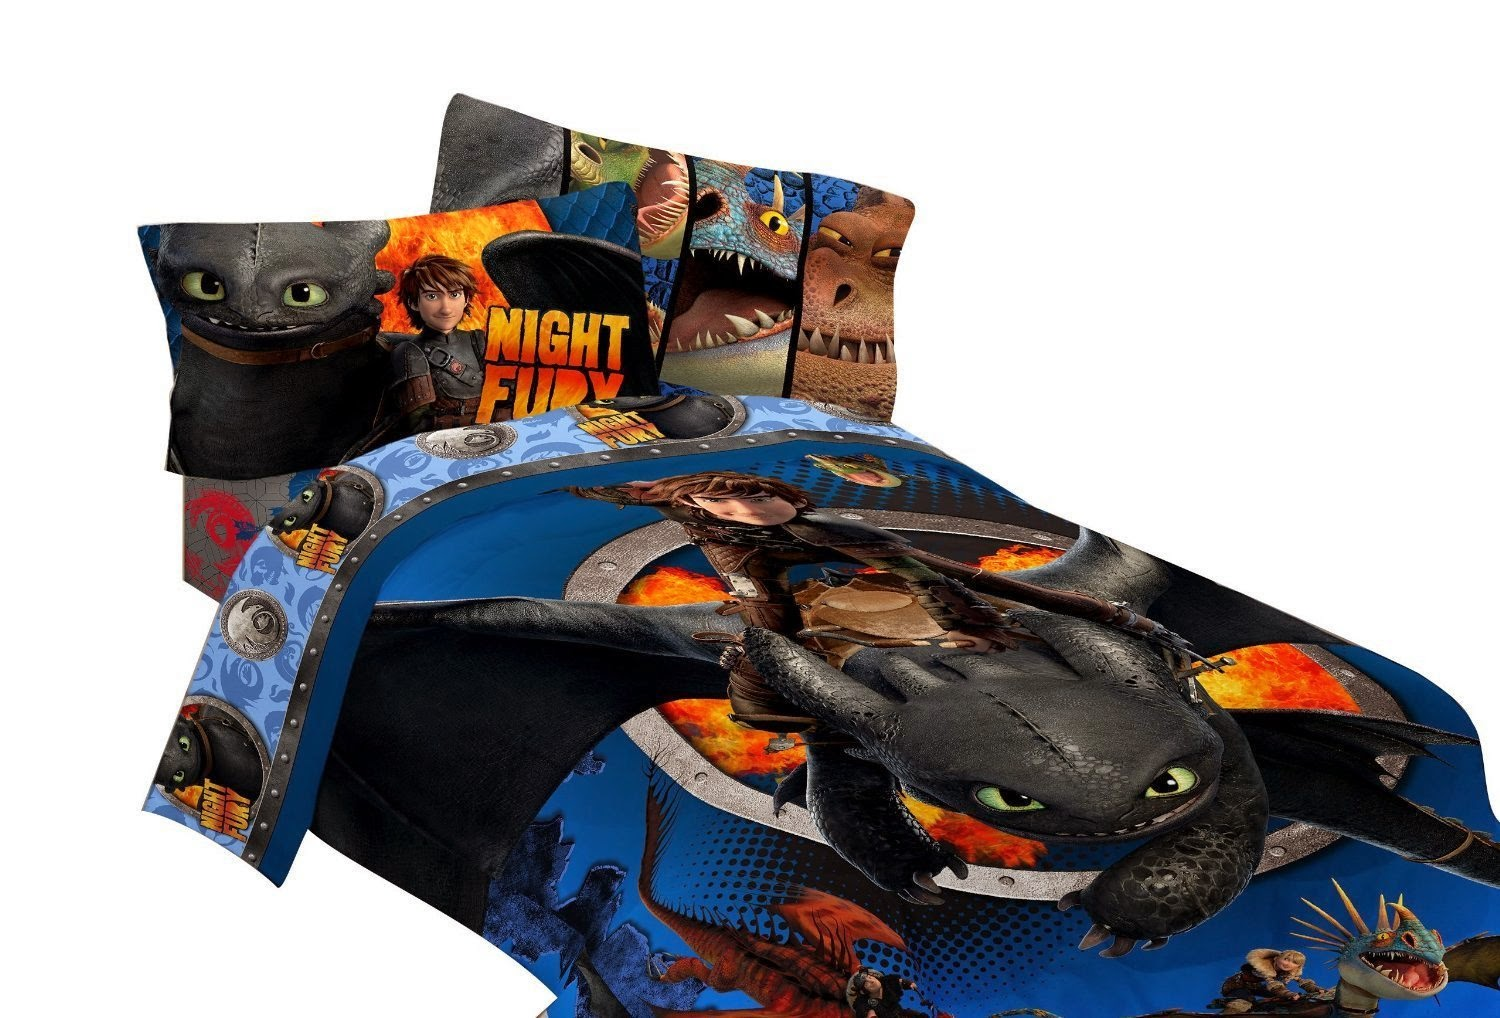 How to Train Your Dragon Bedding Sets. Bedroom Decor Ideas and Designs   How to Train Your Dragon  Themed